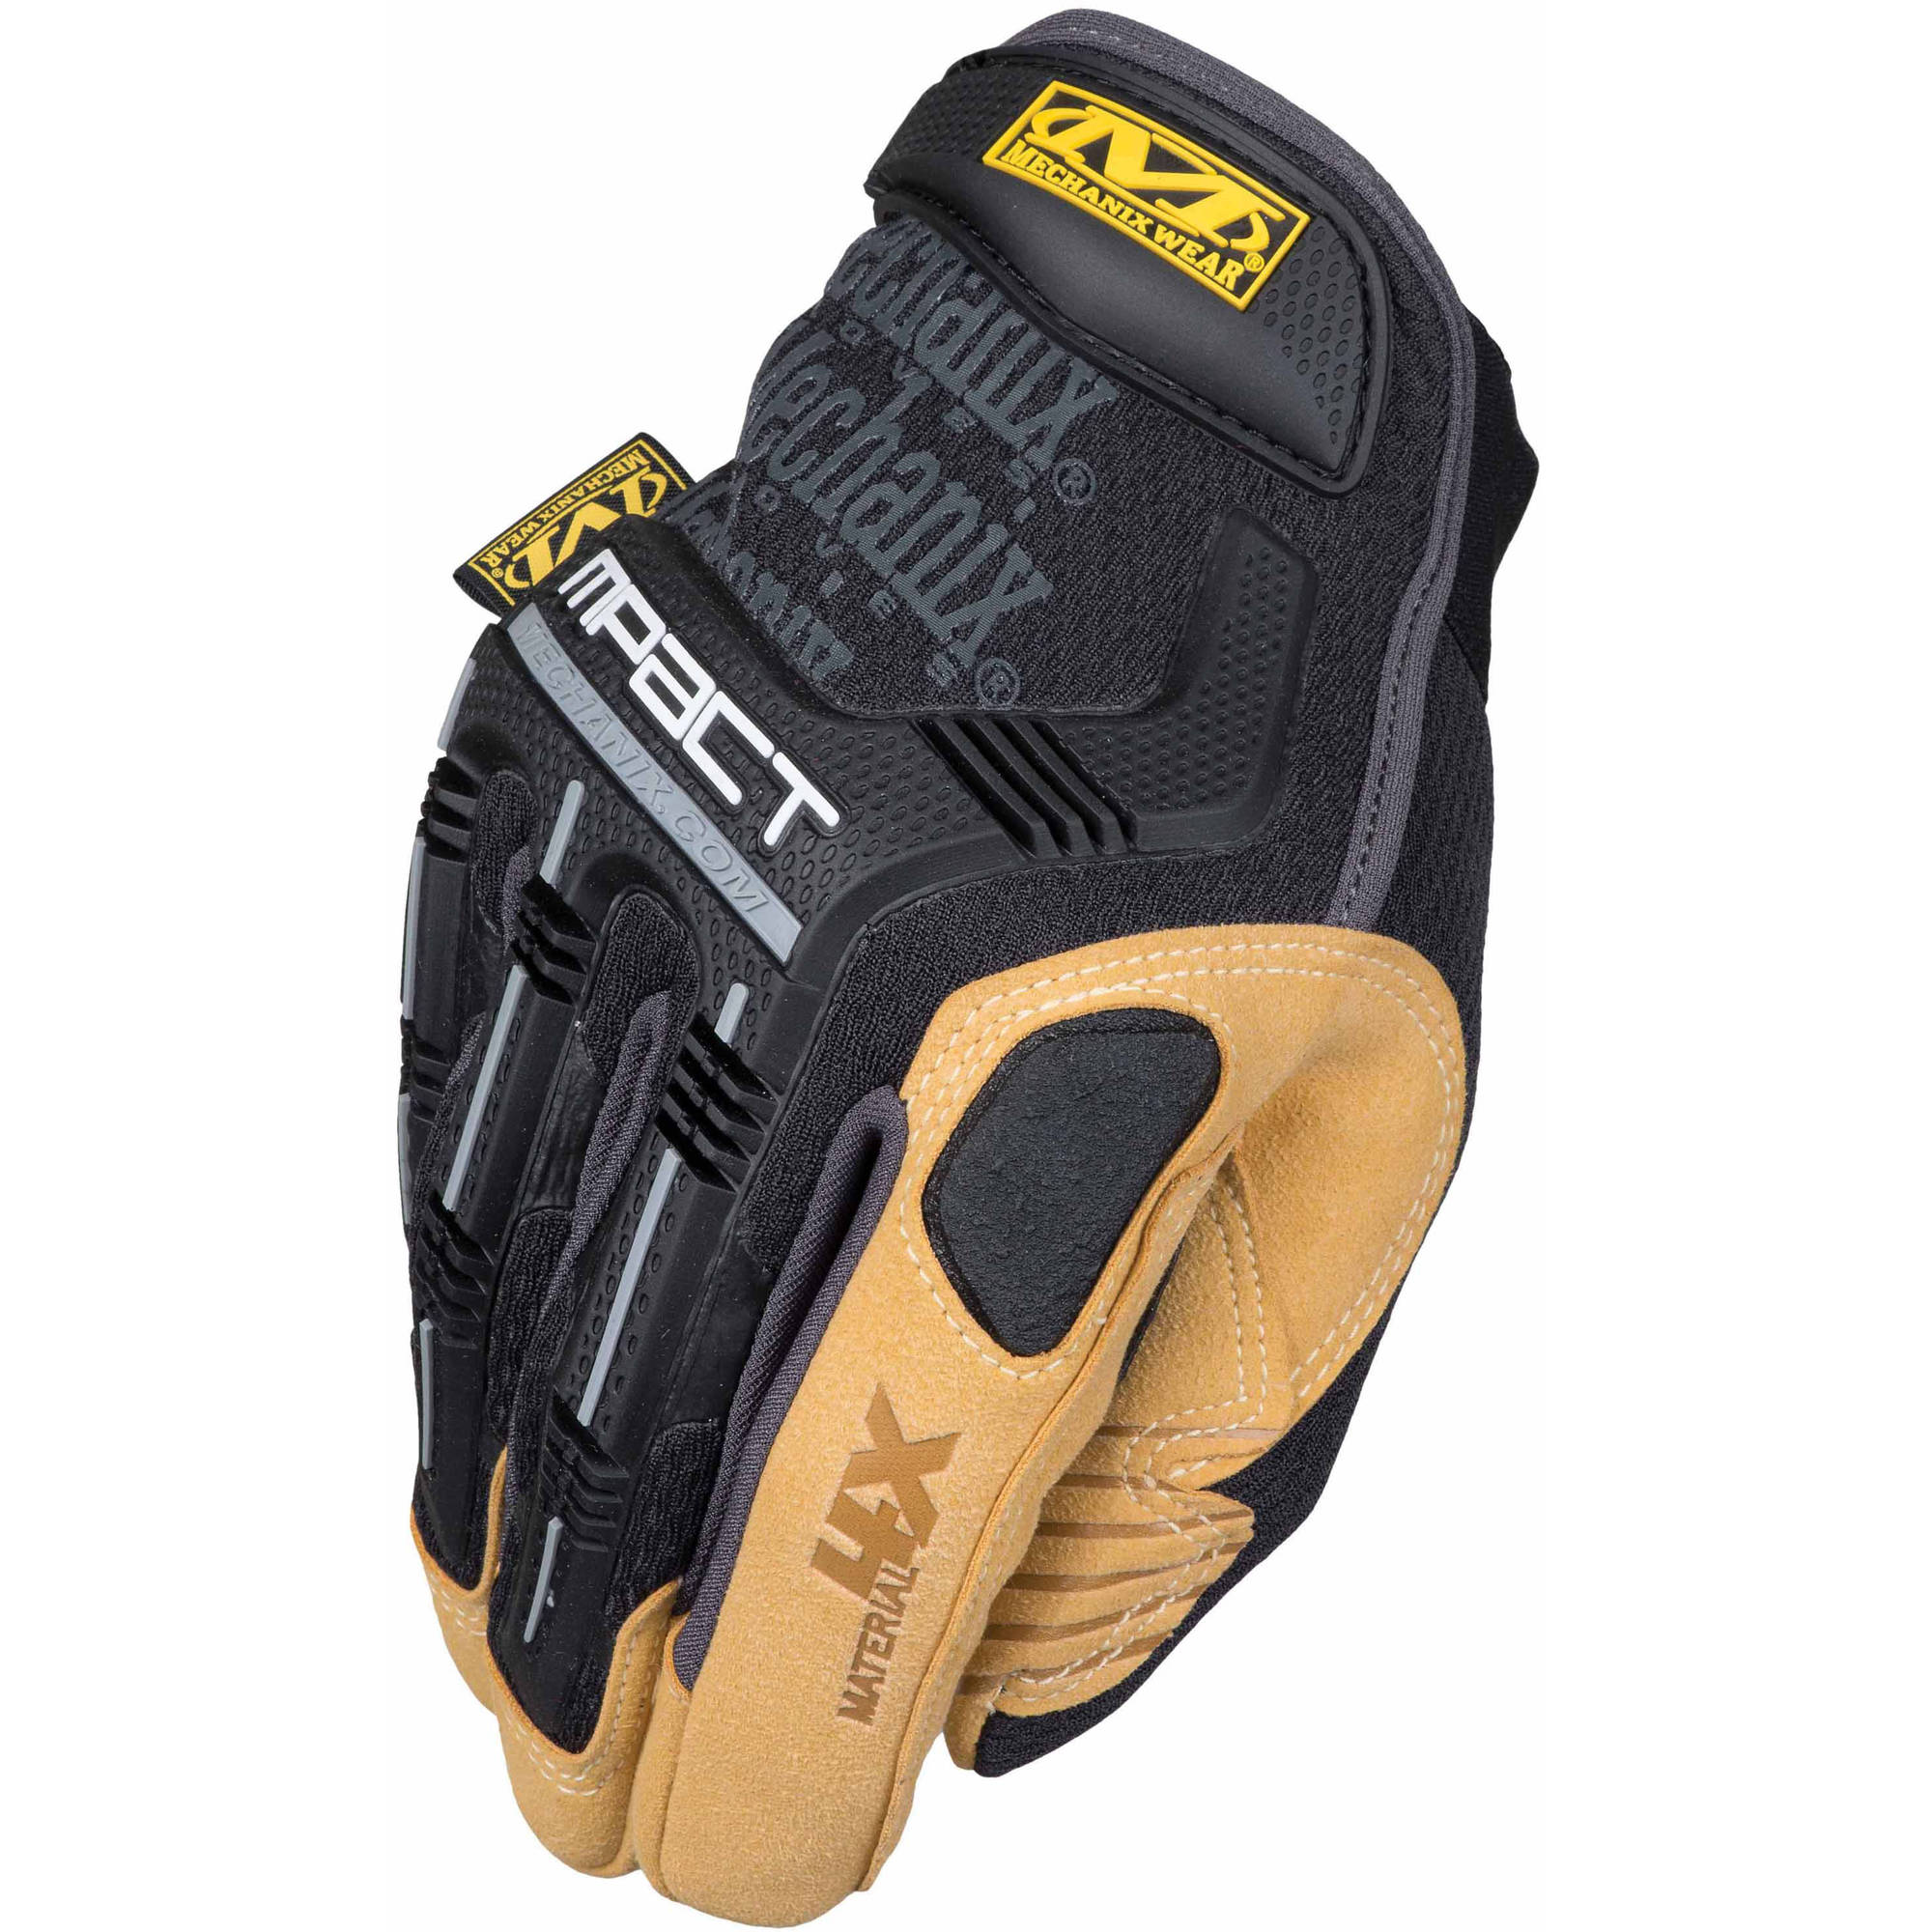 Mechanix Wear Material 4X Mpact Glove, Tan, Medium